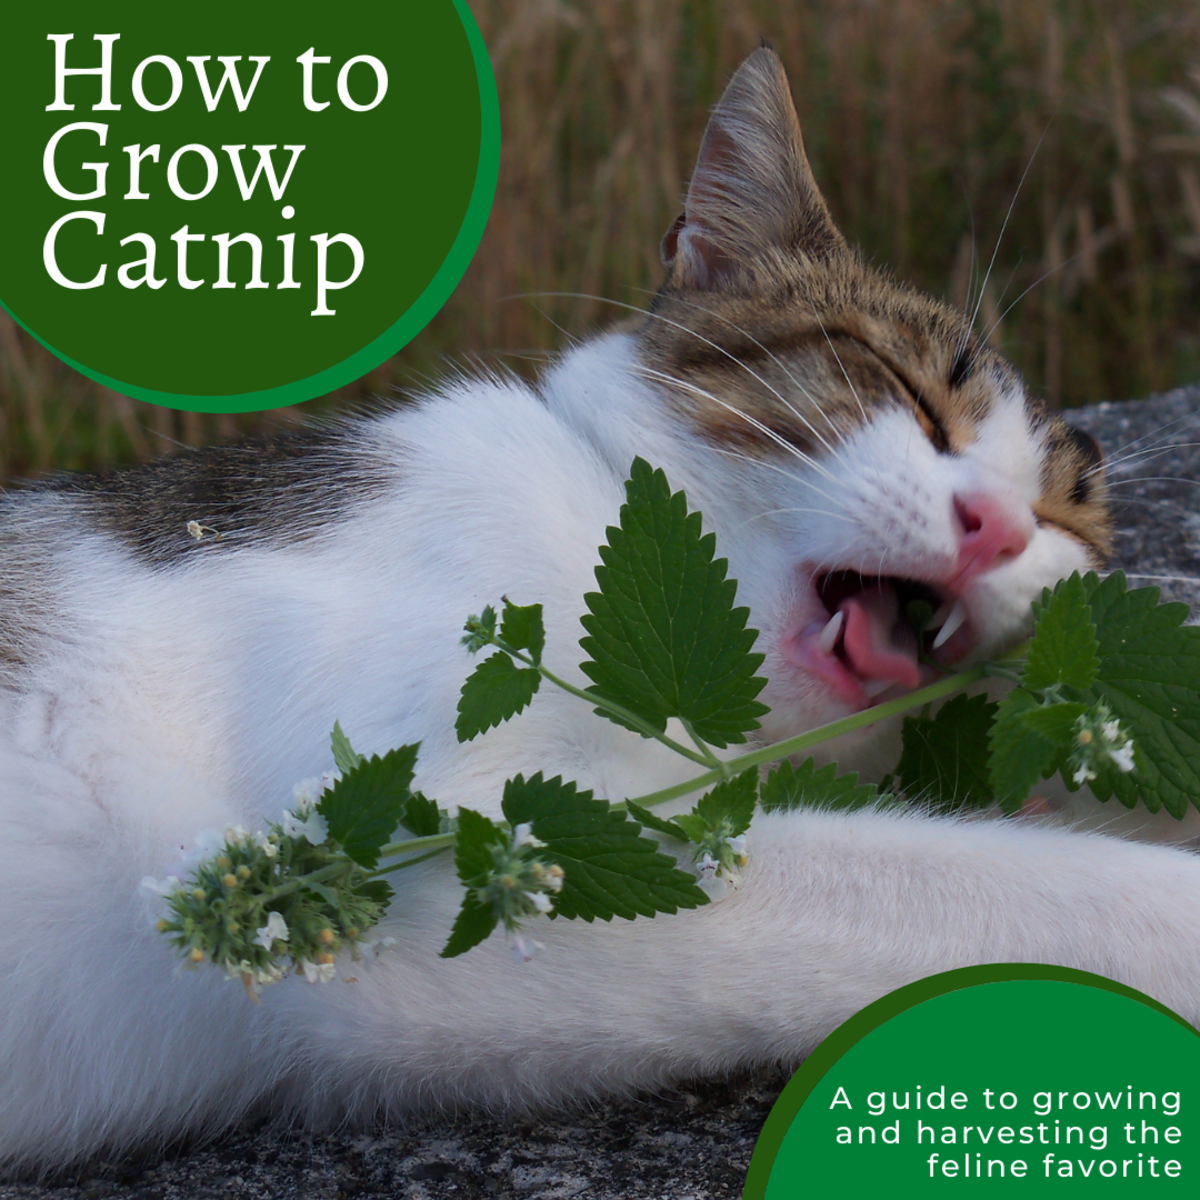 A Complete Guide to Growing Catnip From Seed to Harvest